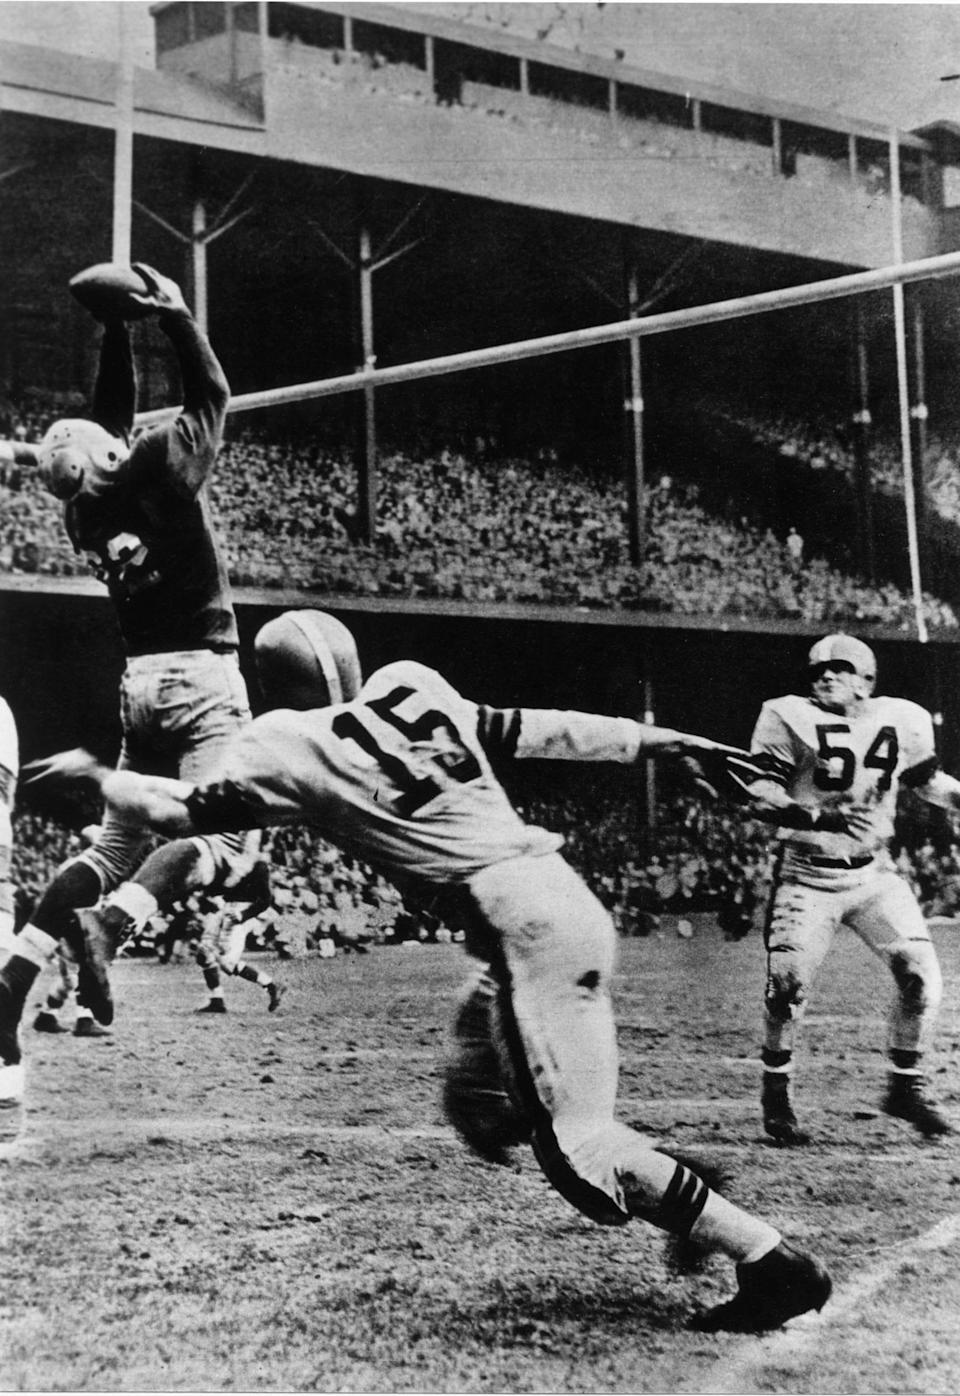 Lions quarterback Bobby Layne attempted to throw the ball out of bounds but Leon Hart, Lions #85, jumped up and caught it after it came over the cross bar for a touch down in game against the Cleveland Browns circa 1951-53.